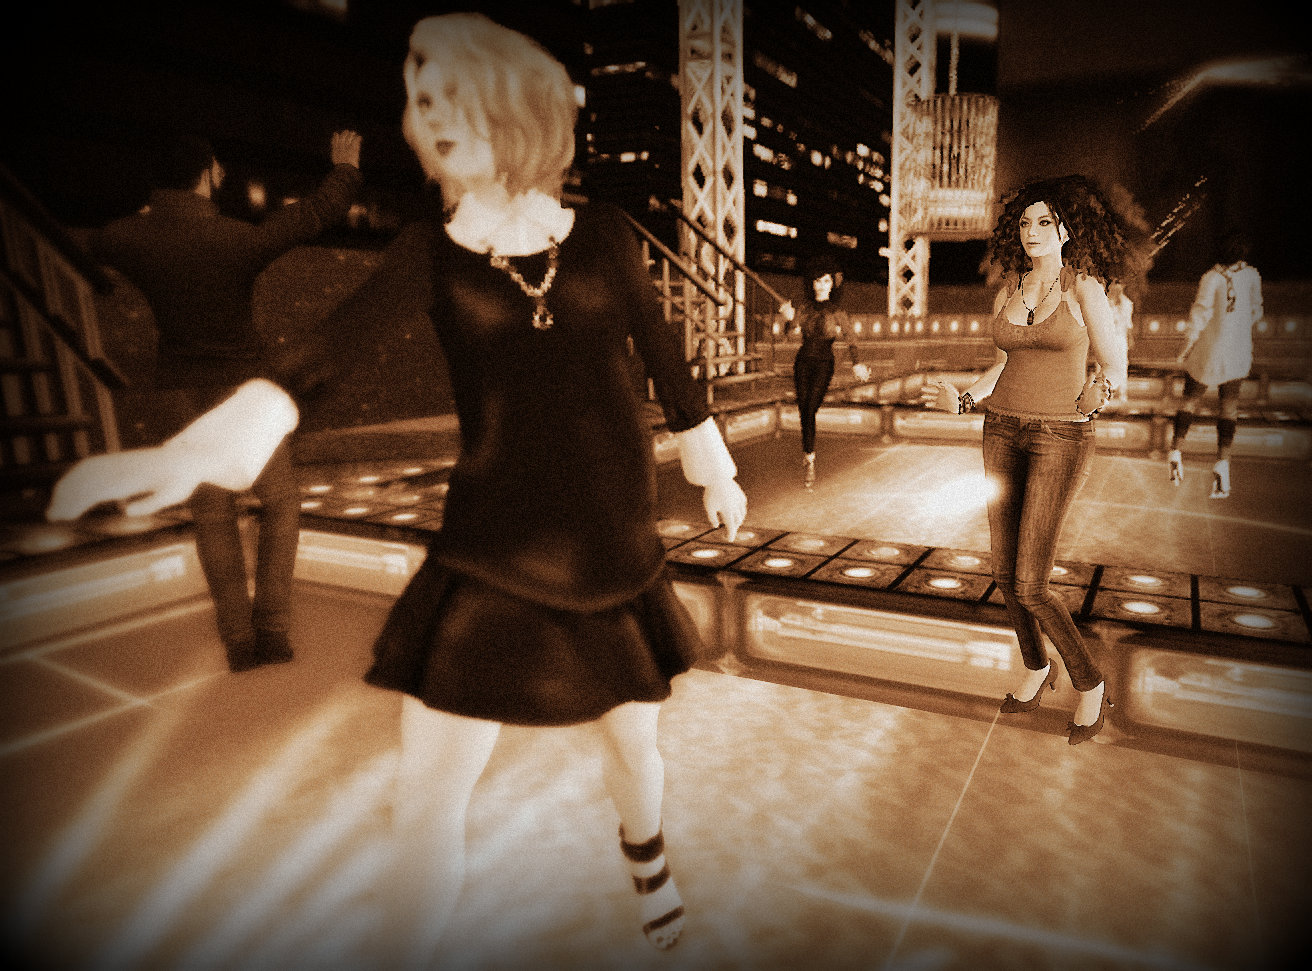 selenium-toned photo of Vanessa Blaylock and Agnes Sharple dancing at a club